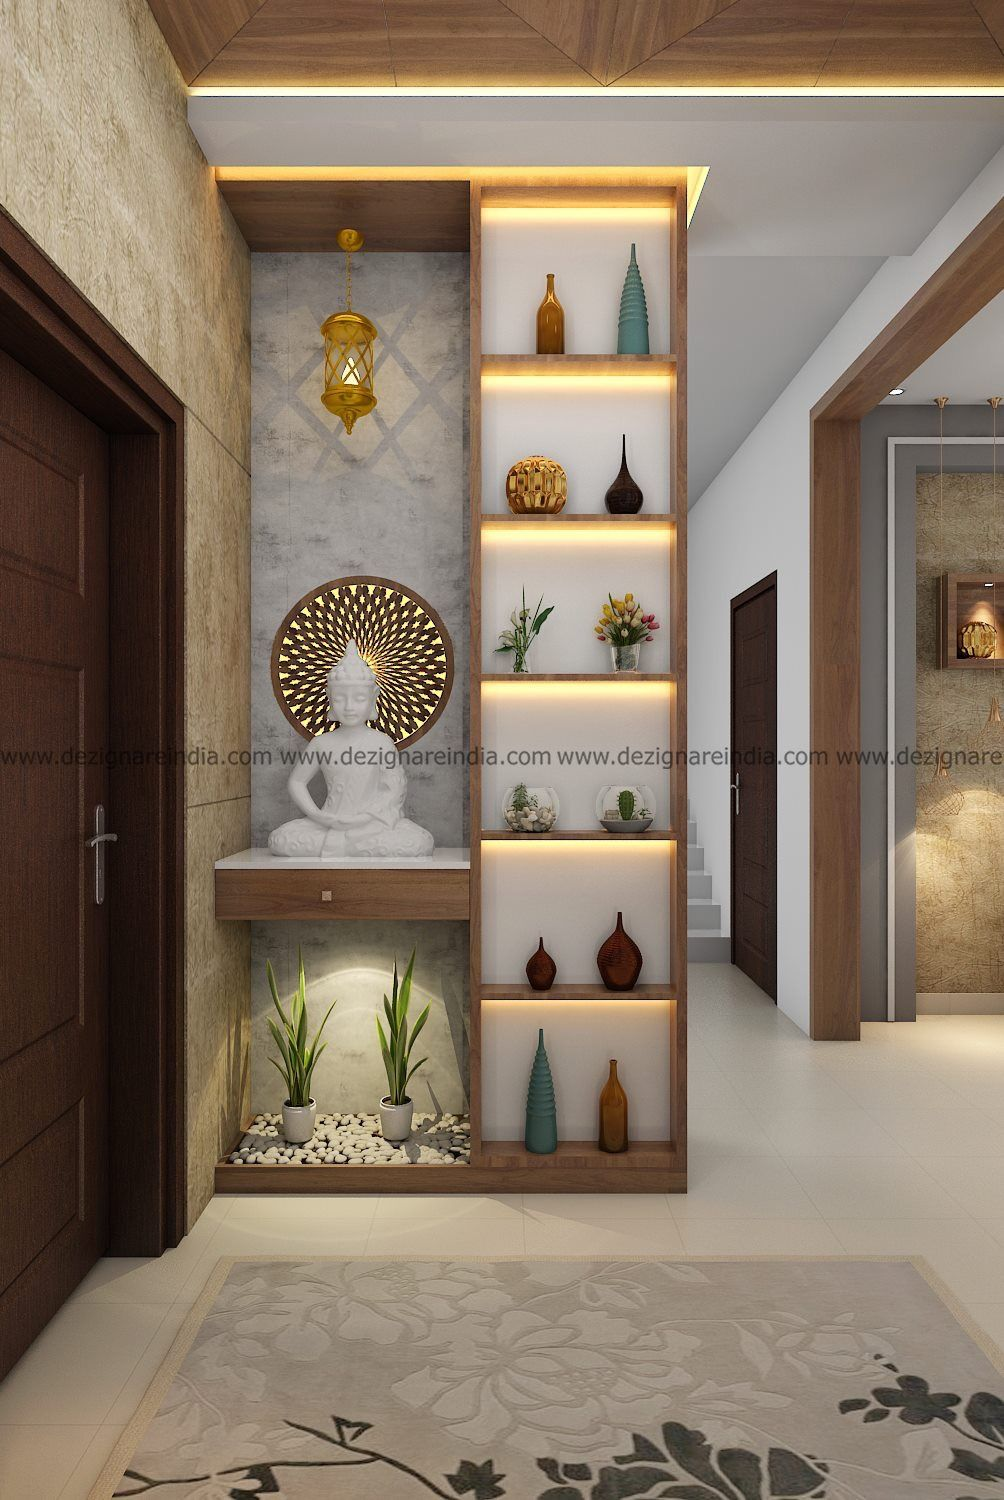 Room Design Interior: Pin By Krishna Allamreddygari On Interiors